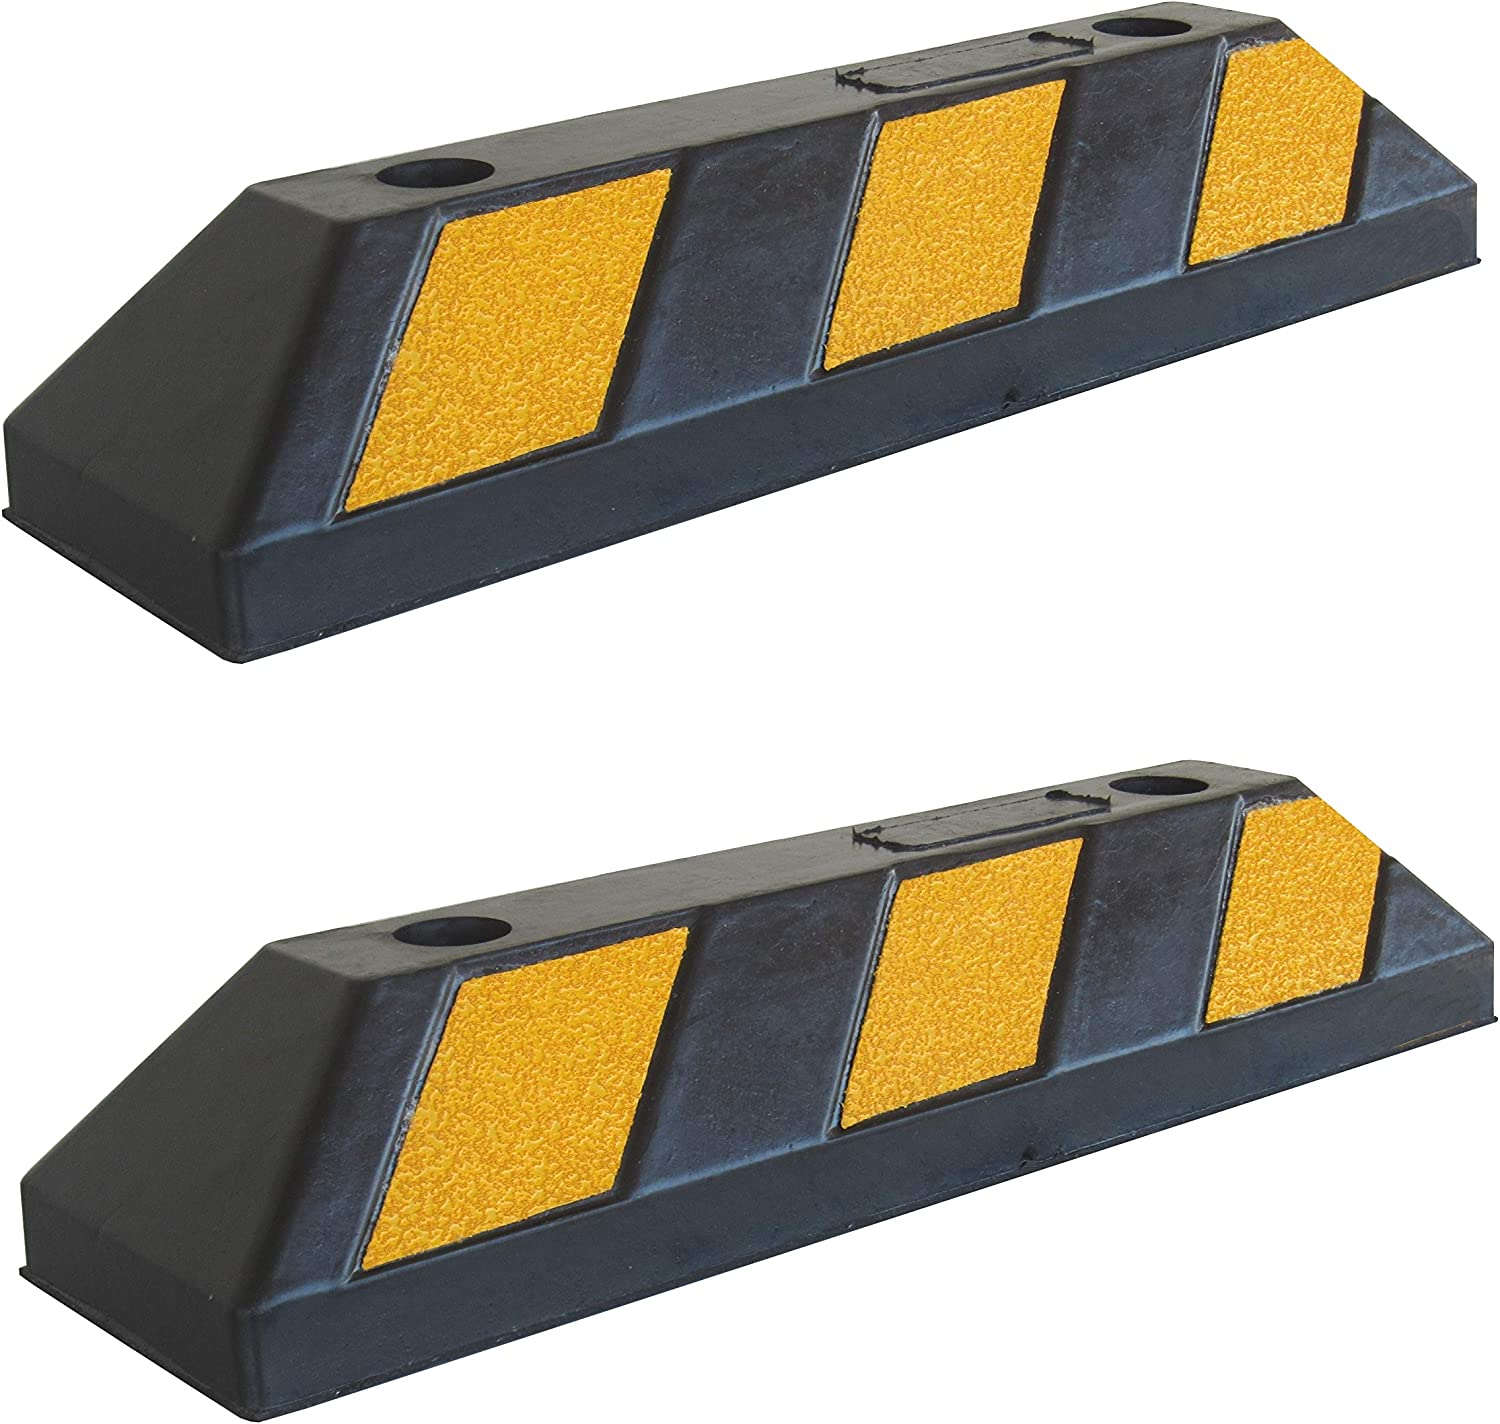 Parking Stopper for Garage Floor Max 71% OFF Wheels Car Today's only as Blocks A